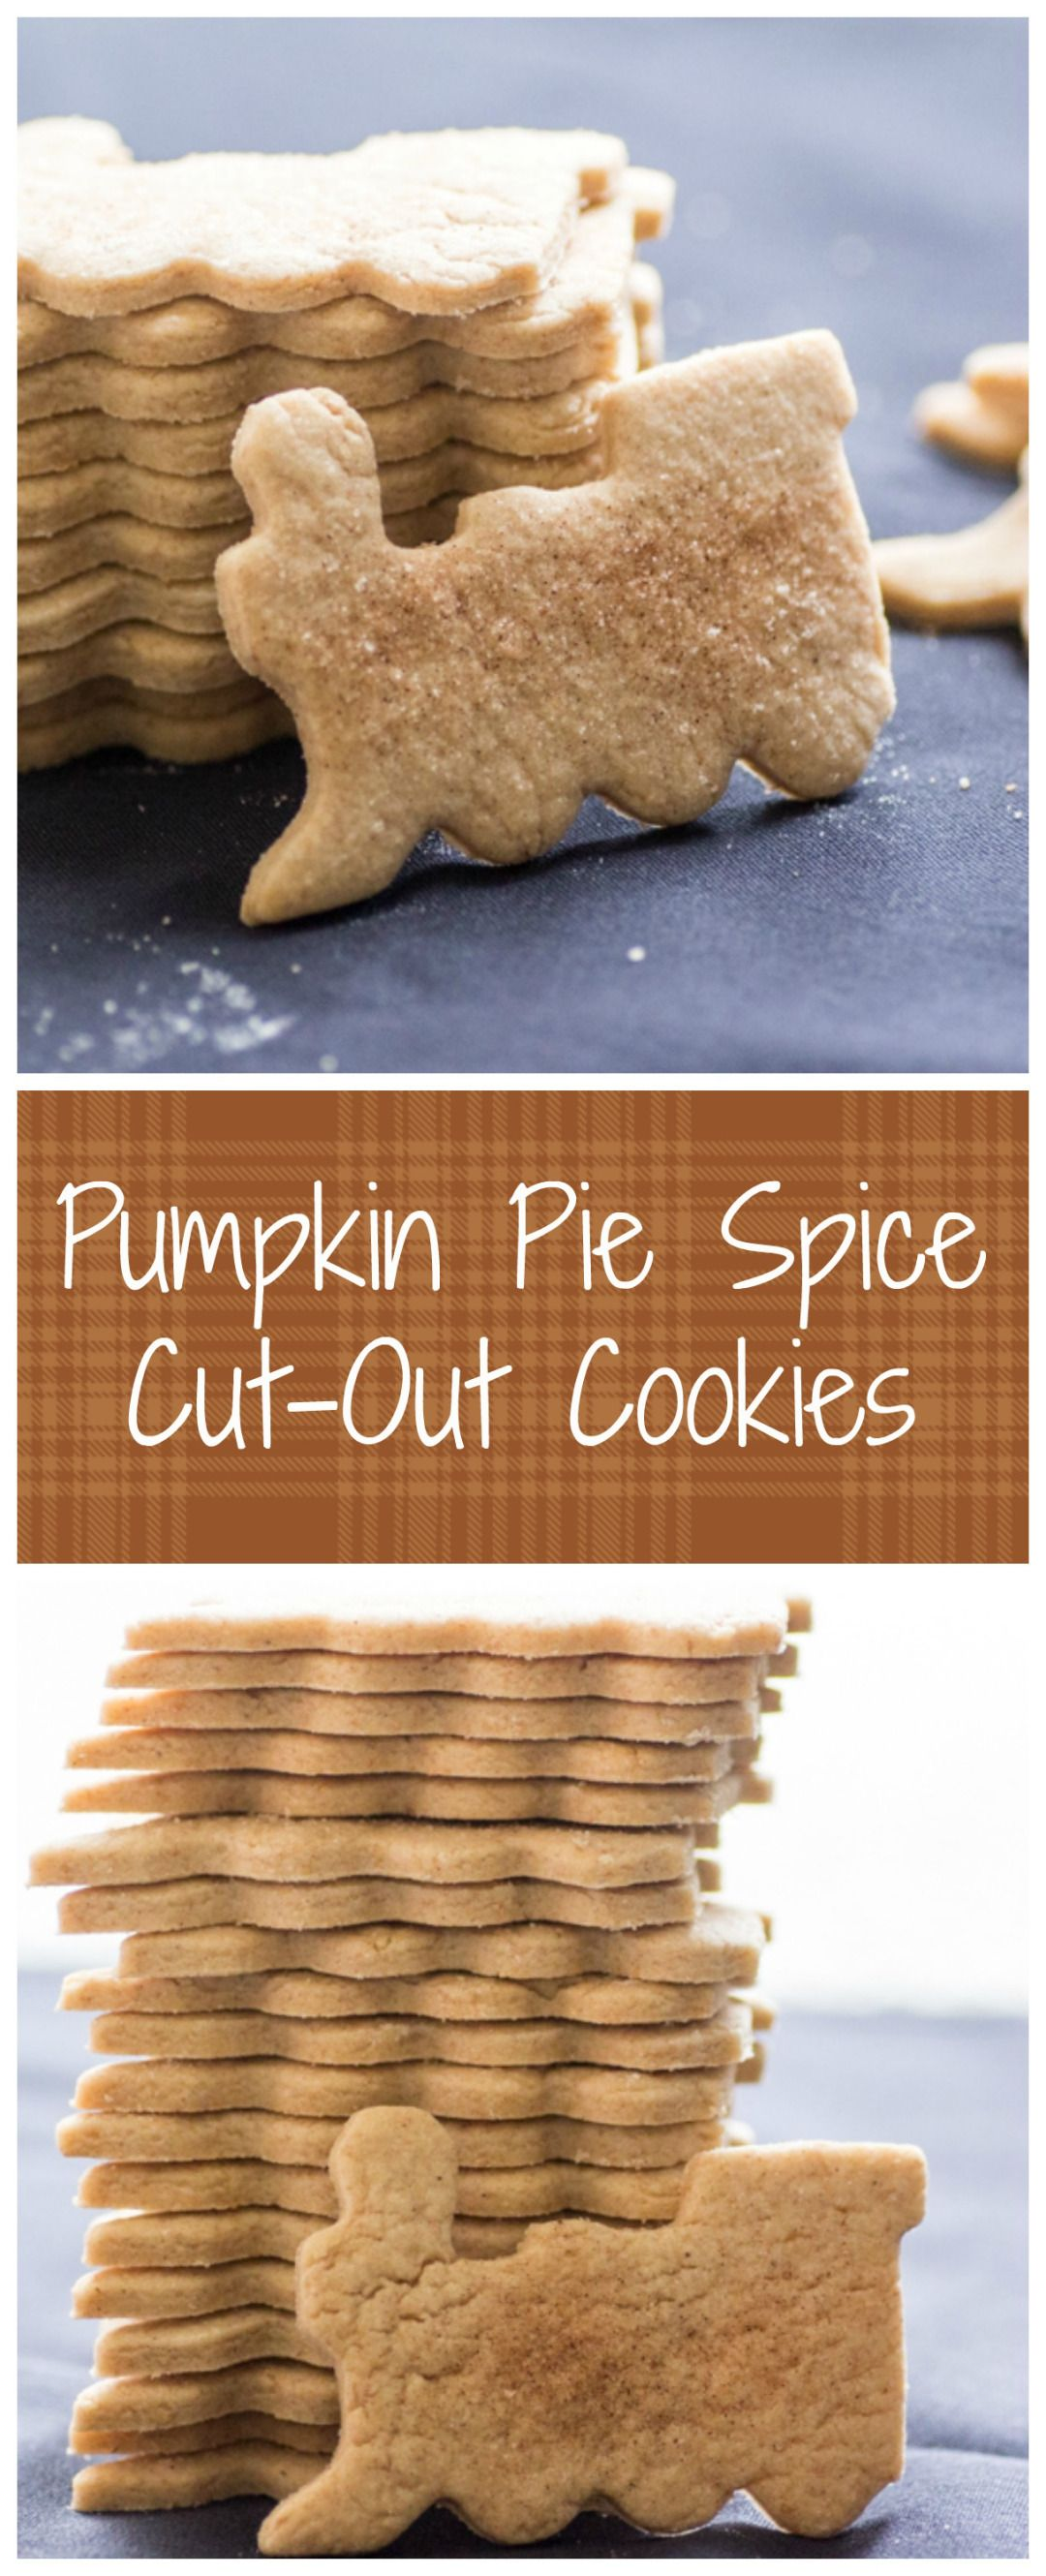 Pumpkin Pie Spice Cut-Out Cookies   Sew You Think You Can Cook   http://sewyouthinkyoucancook.com